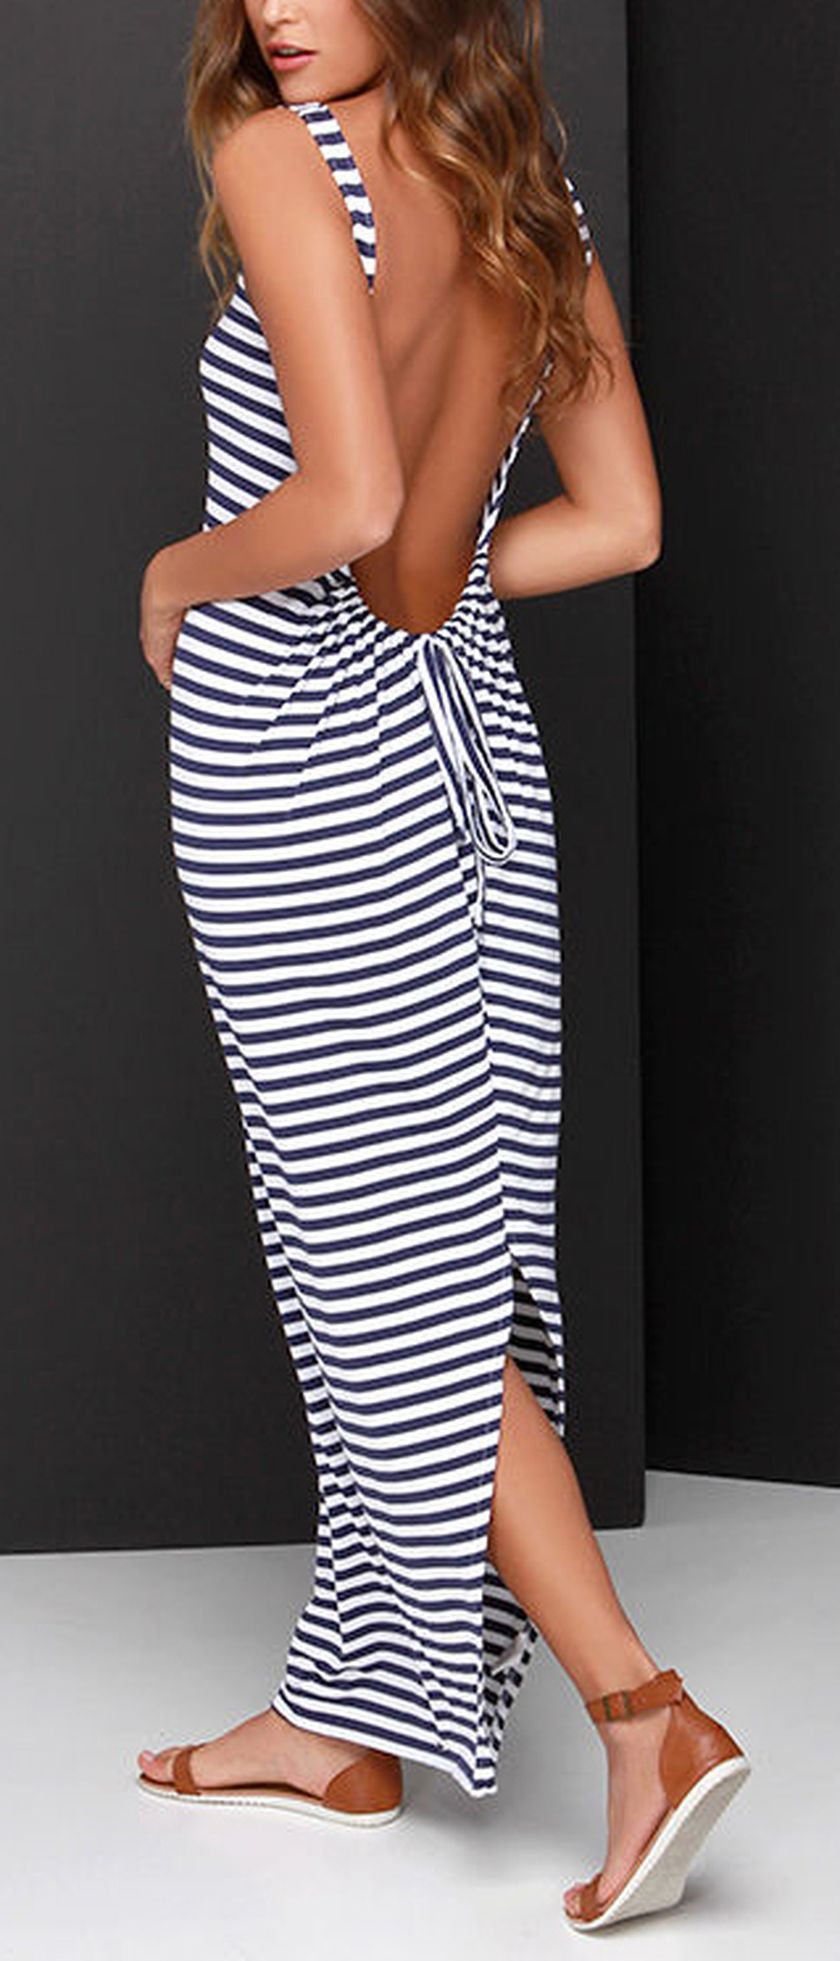 Summer casual backless dresses outfit style 56